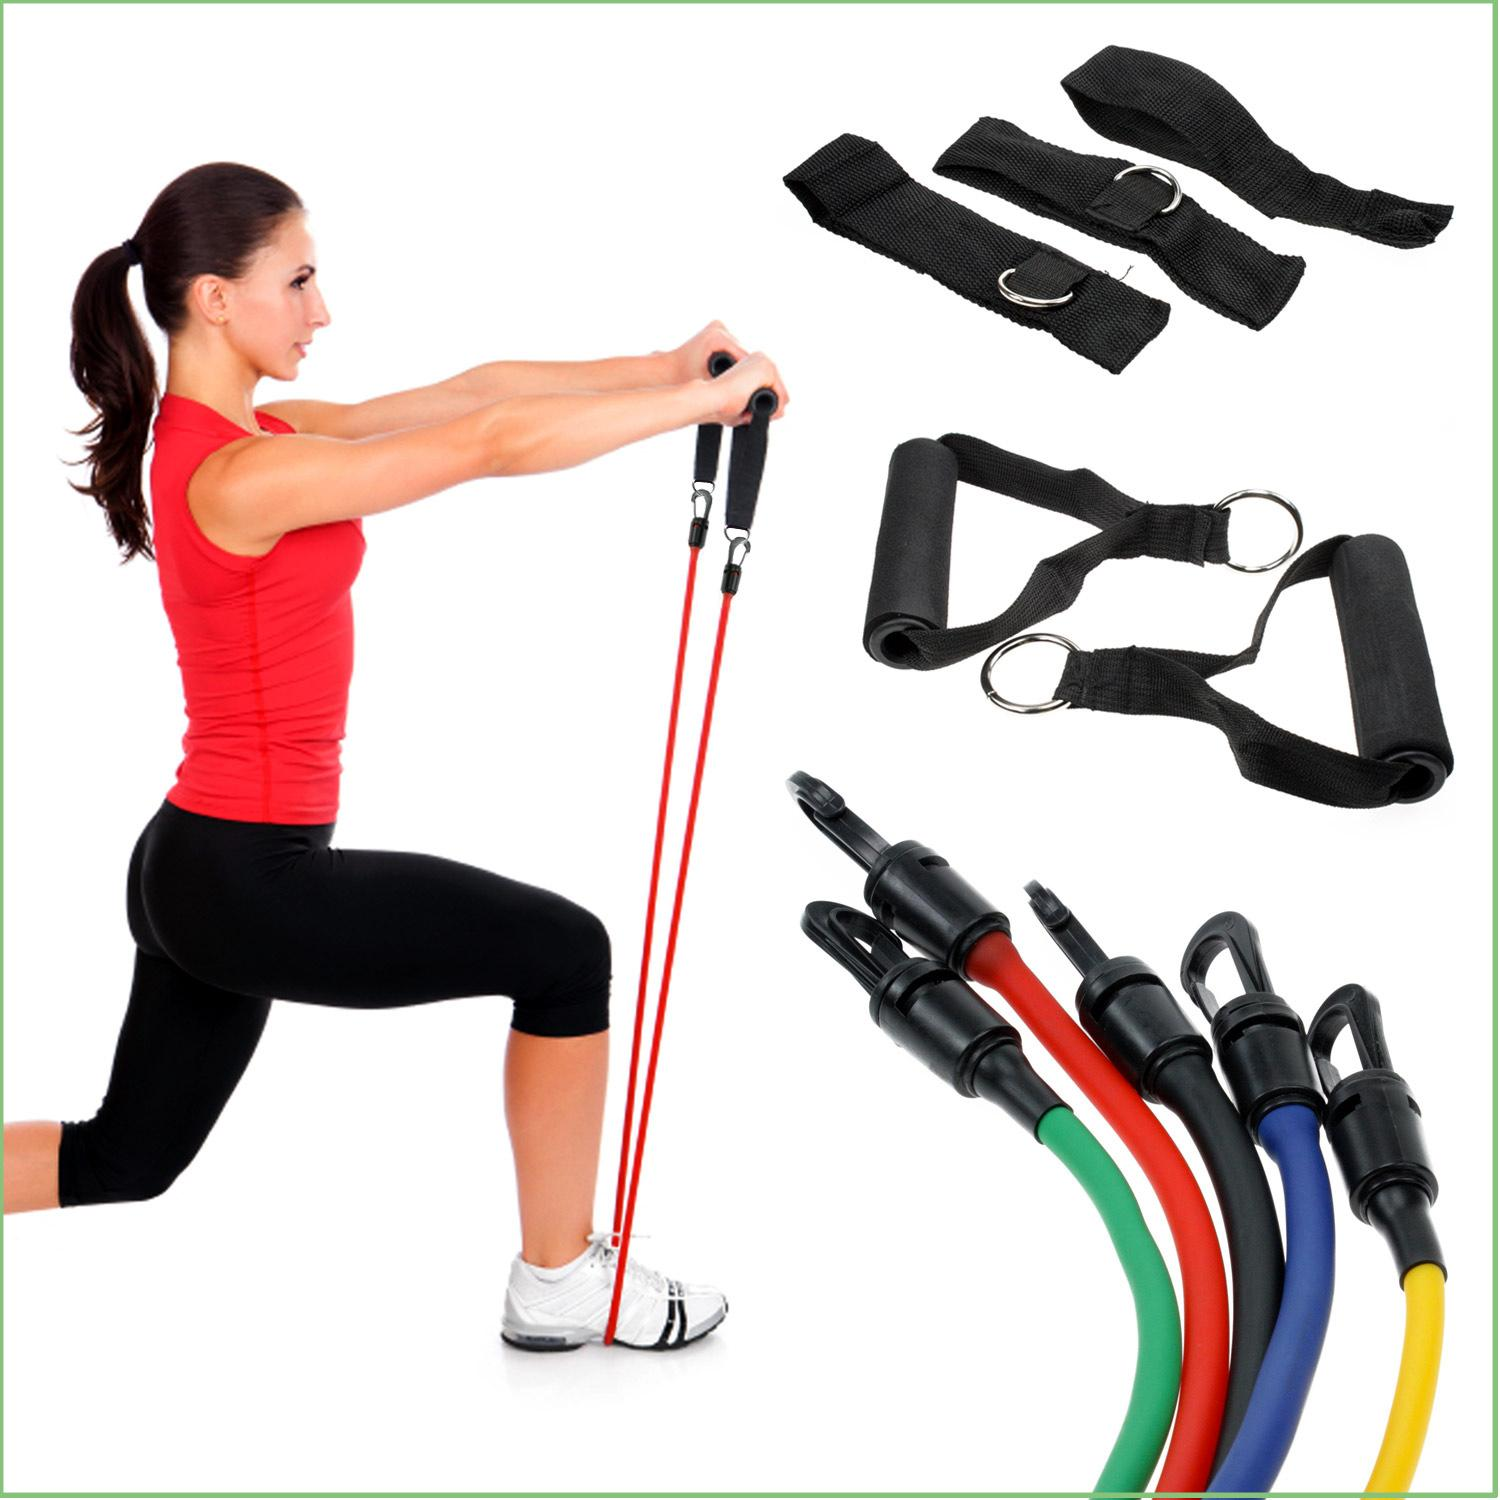 RESISTANCE BANDS 11 PCS FITNESS EXERCISE LATEX TUBE X 90 P